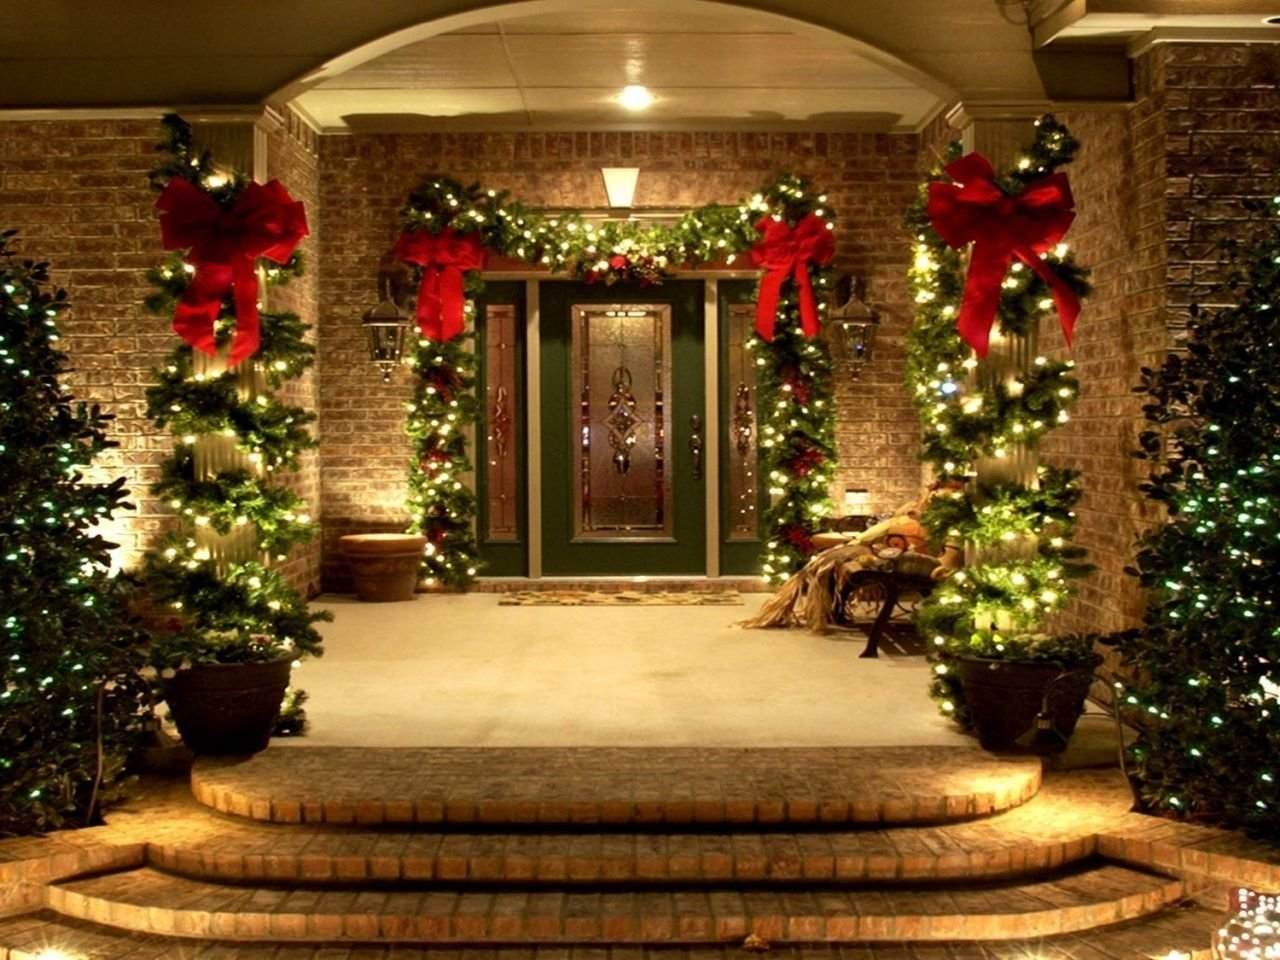 Captivating 10 Unique Outdoor Christmas Decorating Ideas Pictures Best Outdoor  Christmas Decorations Ideas For Night Pic Diy